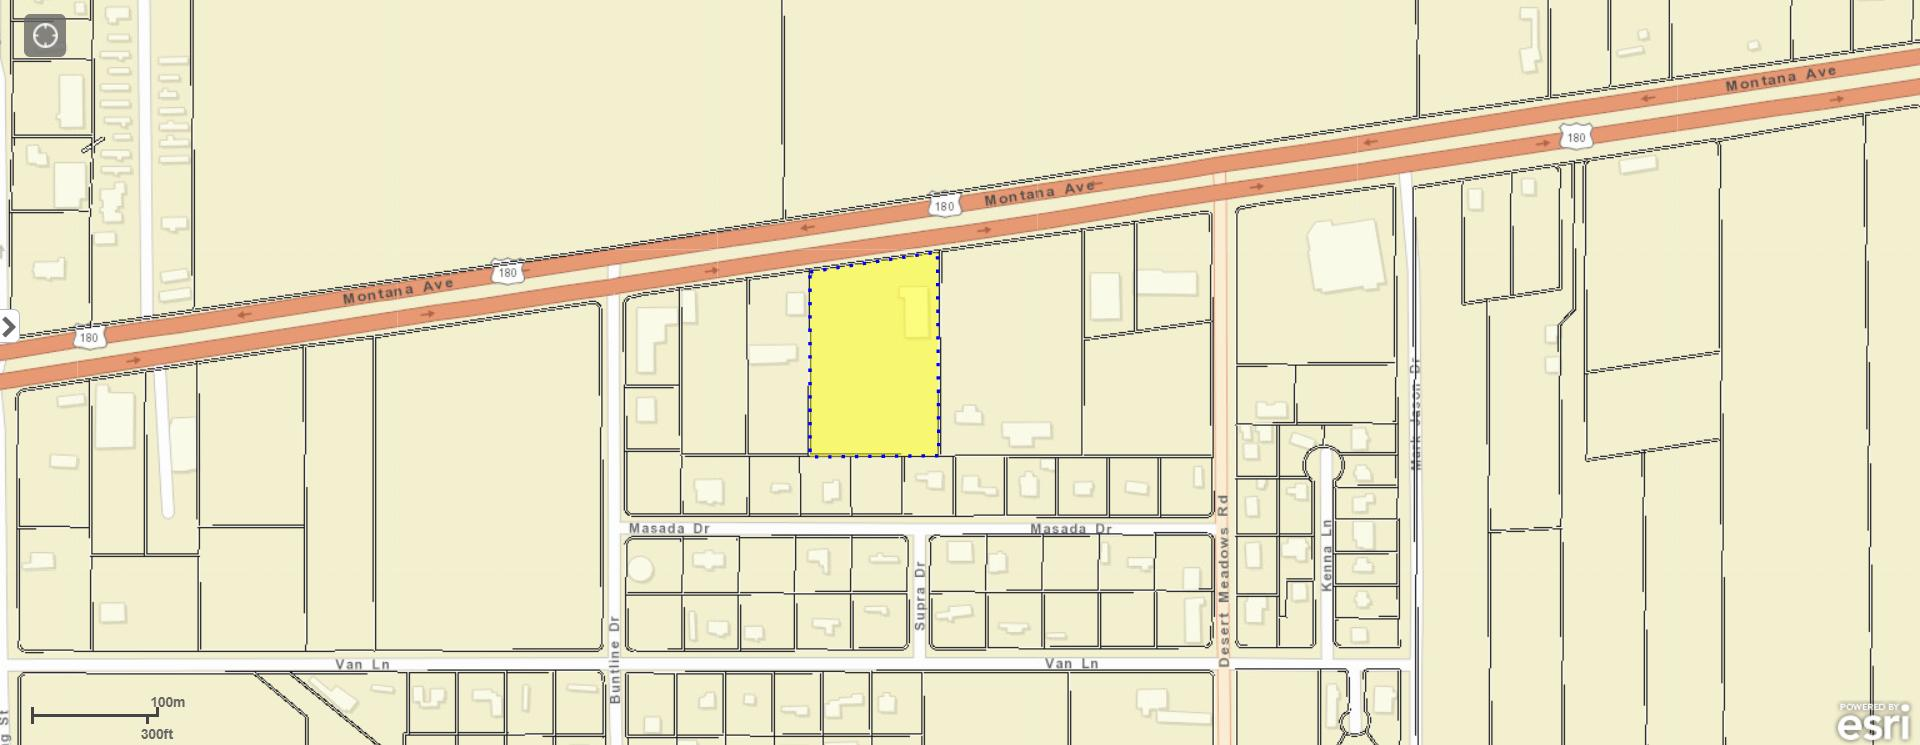 14636 Montana Avenue, El Paso, Texas 79938, ,Commercial,For sale,Montana,825942